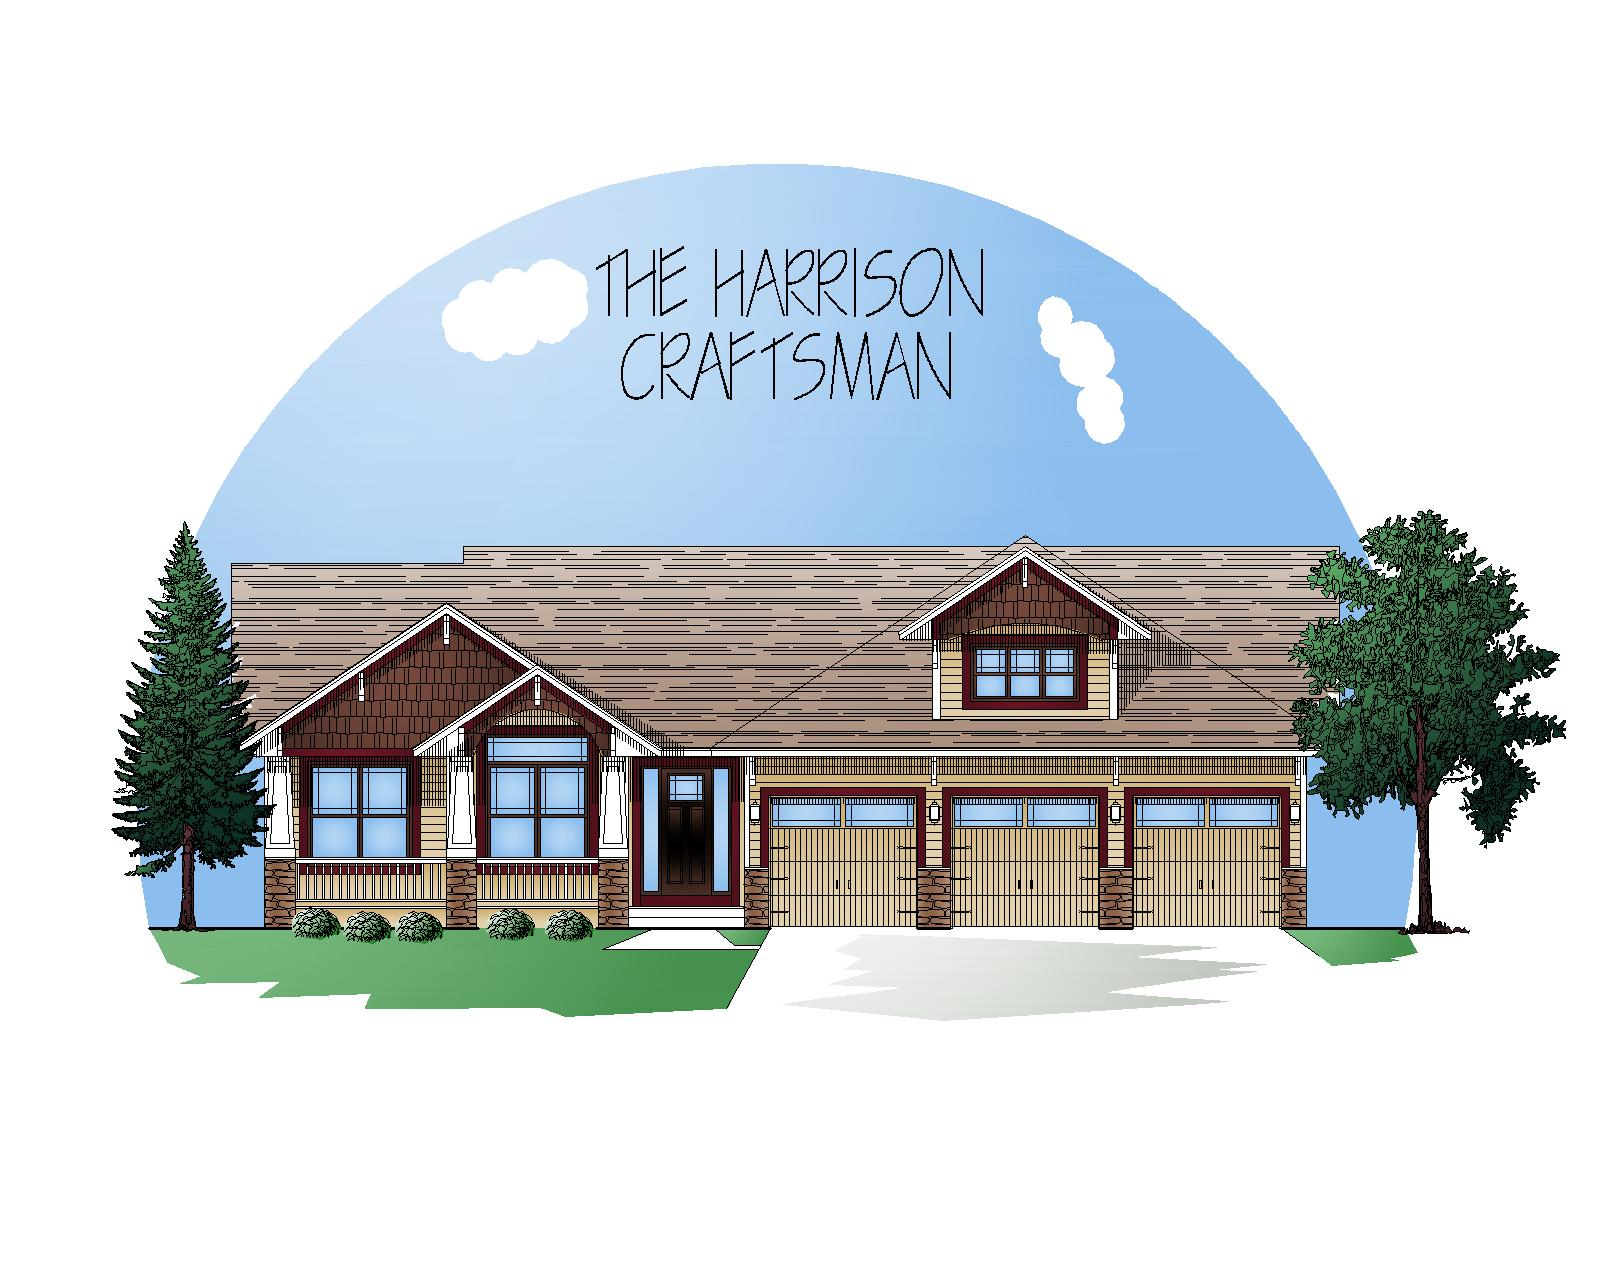 Craftsman Style The Harrison